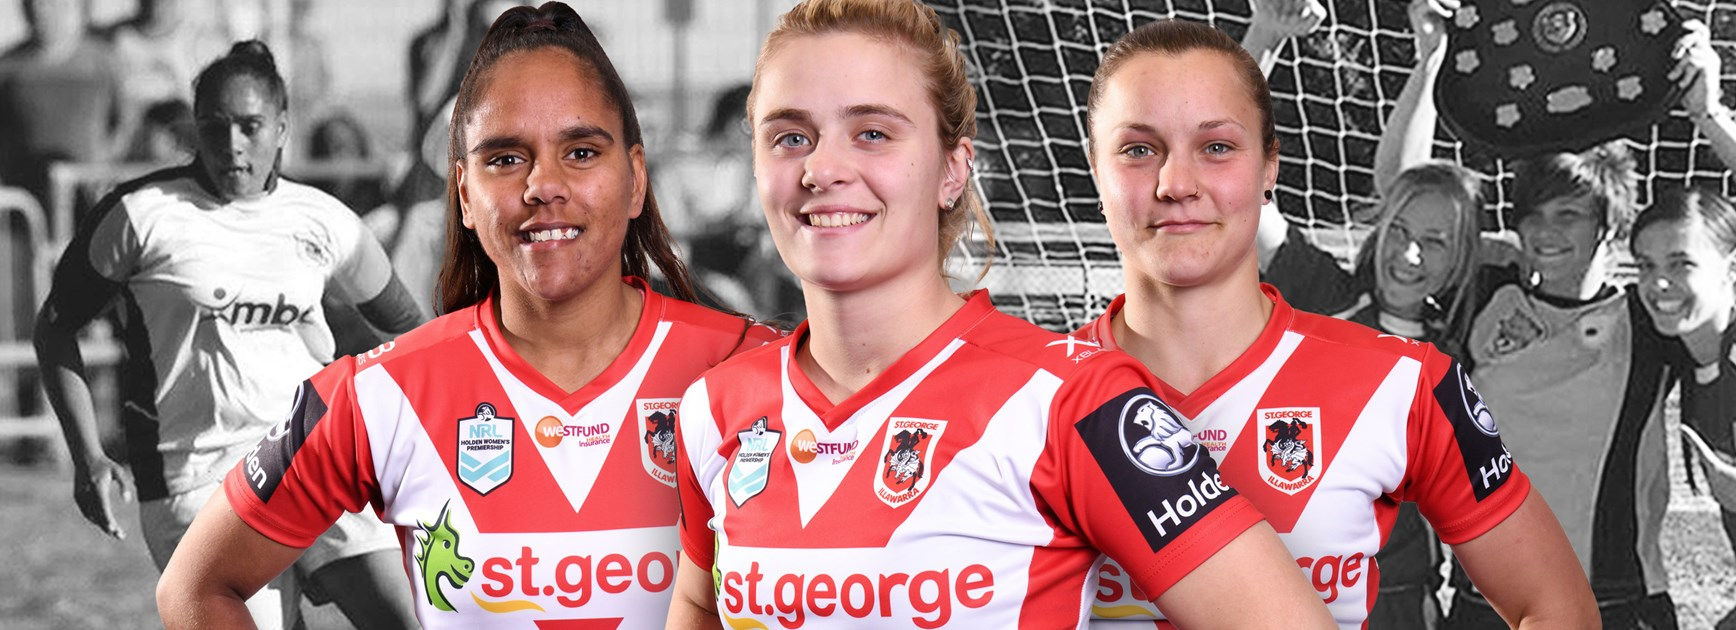 From soccer stars to NRLW: Trio to make history